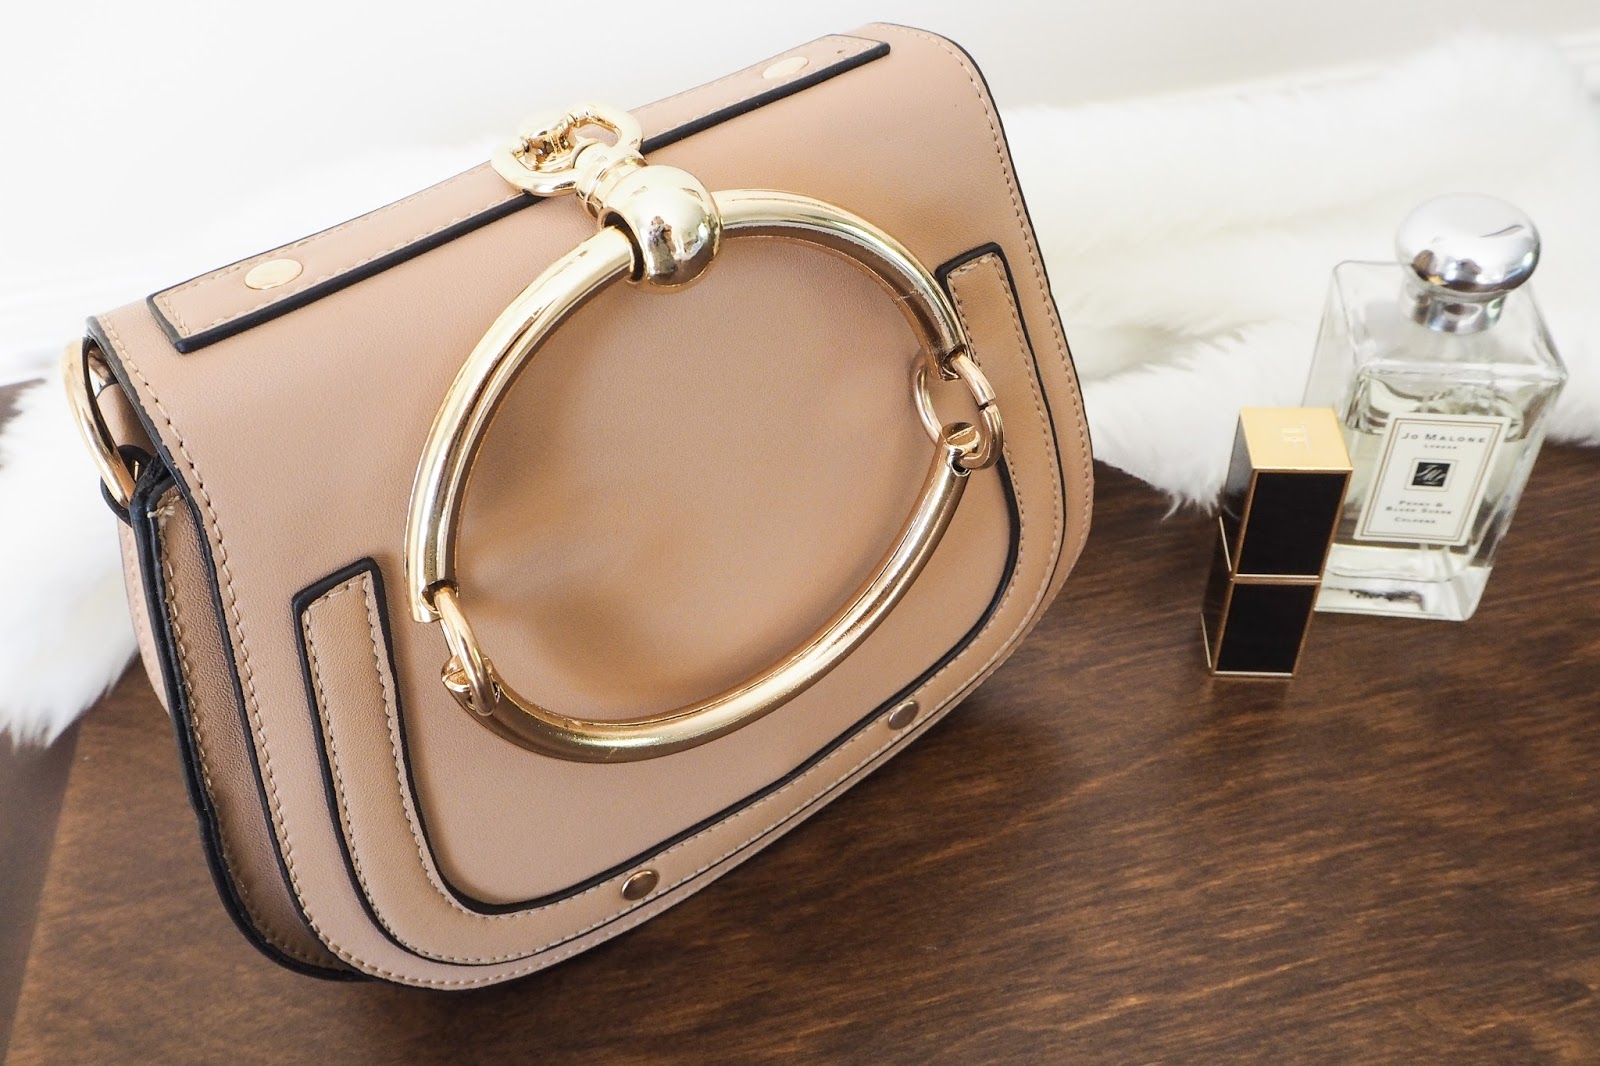 Close Up Of The Chloe Nile Dupe Handbag